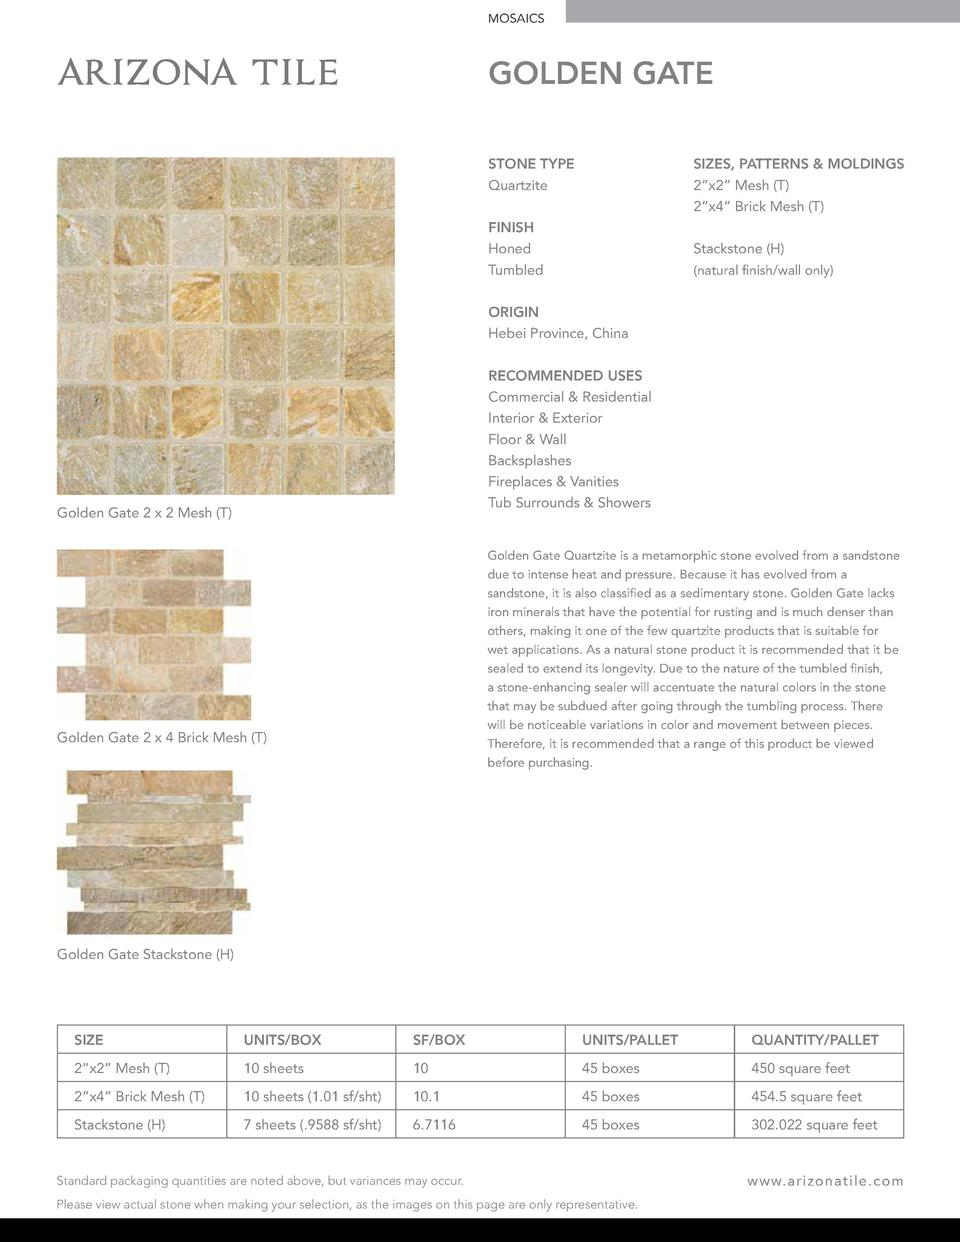 MOSAICS  GOLDEN GATE STONE TYPE Quartzite  SIZES, PATTERNS   MOLDINGS 2   x2    Mesh  T  2   x4    Brick Mesh  T   FINISH ...